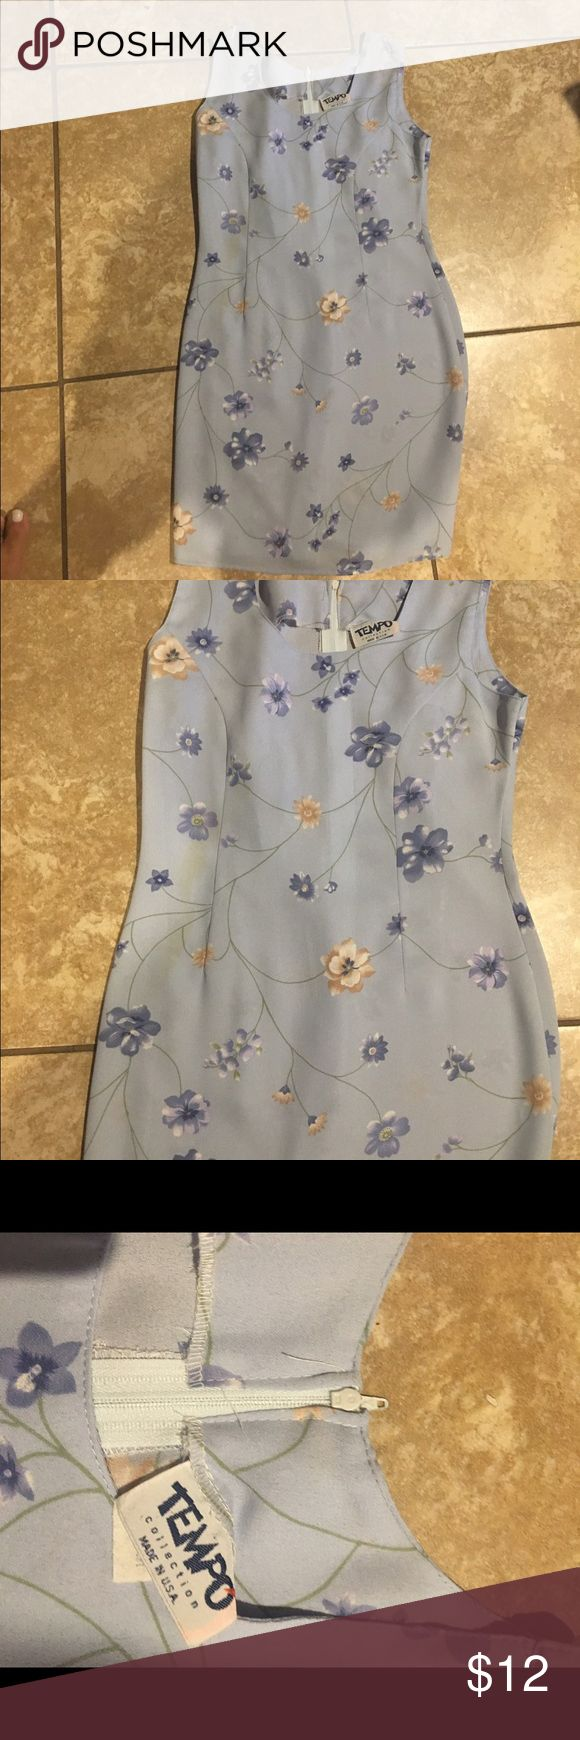 New Women's Tempo Collection  Blue Sundress size s Brand new stylish Tempo Collection light blue knee length floral print Sundress zips up in the back. Dresses Midi